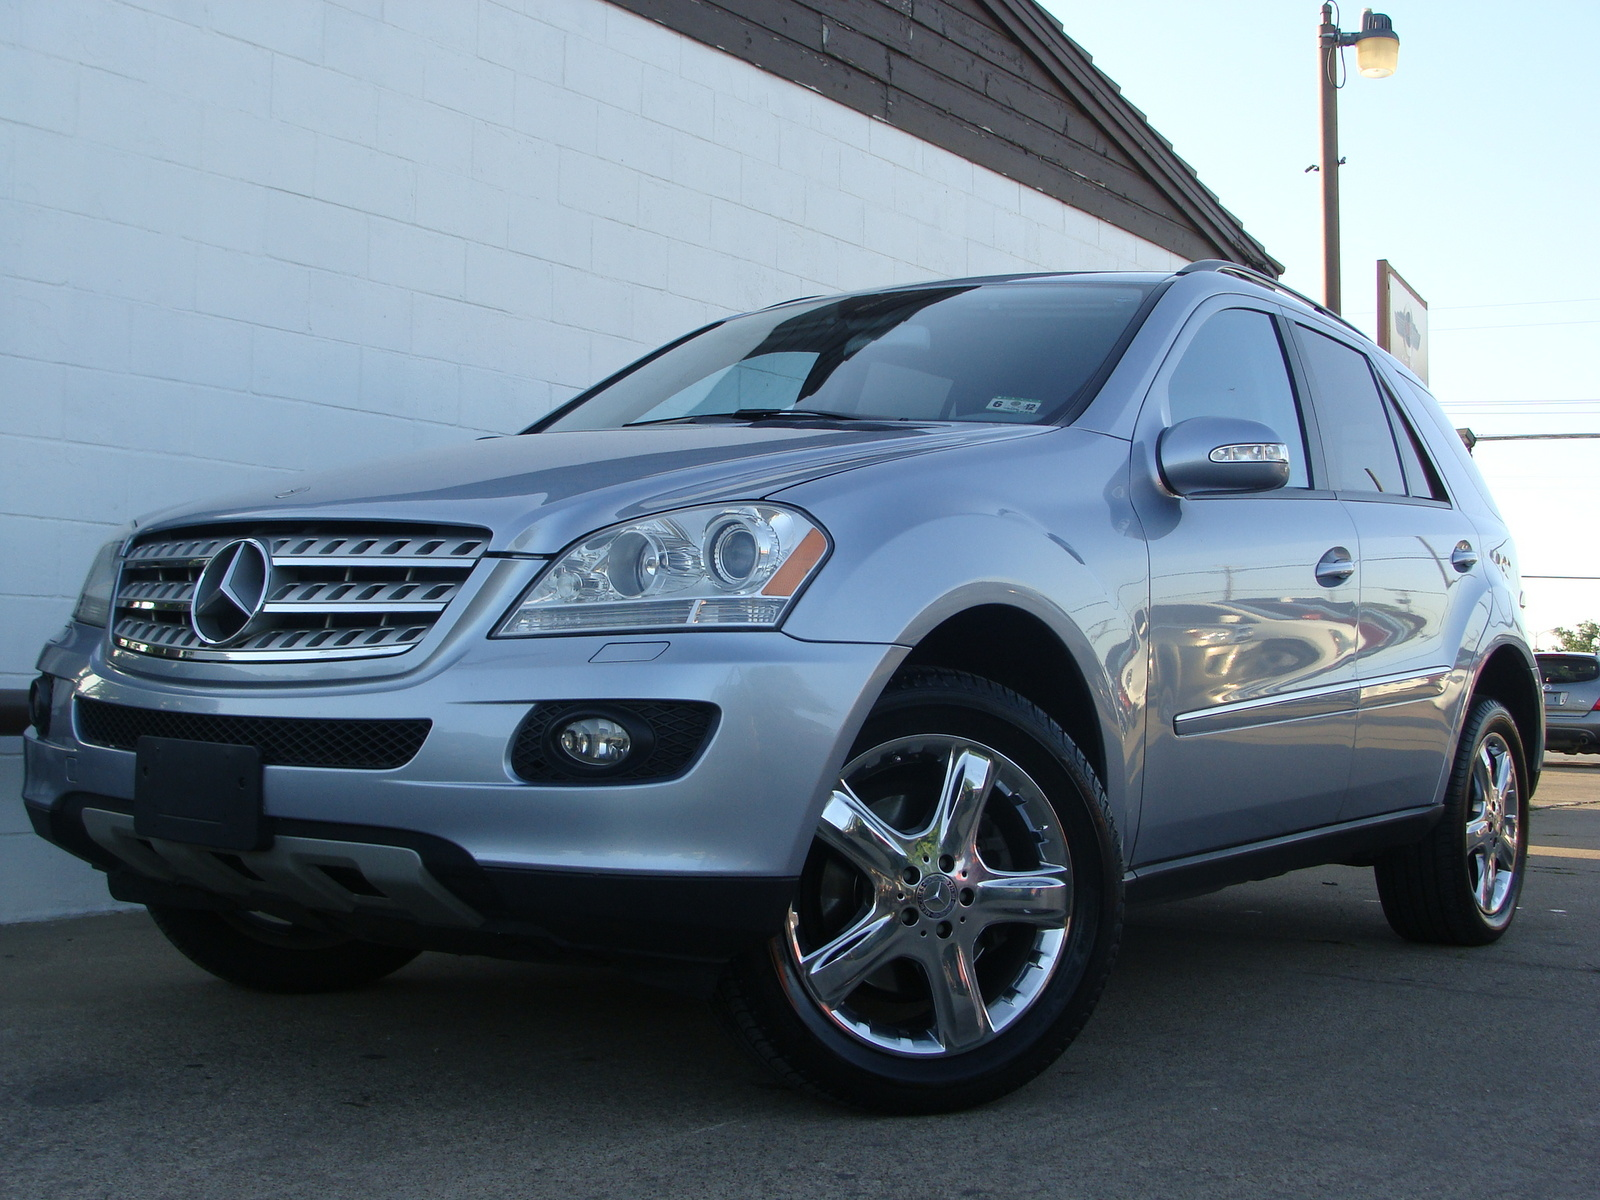 Picture of 2006 mercedes benz m class ml350 4dr suv awd for 2006 mercedes benz m class ml350